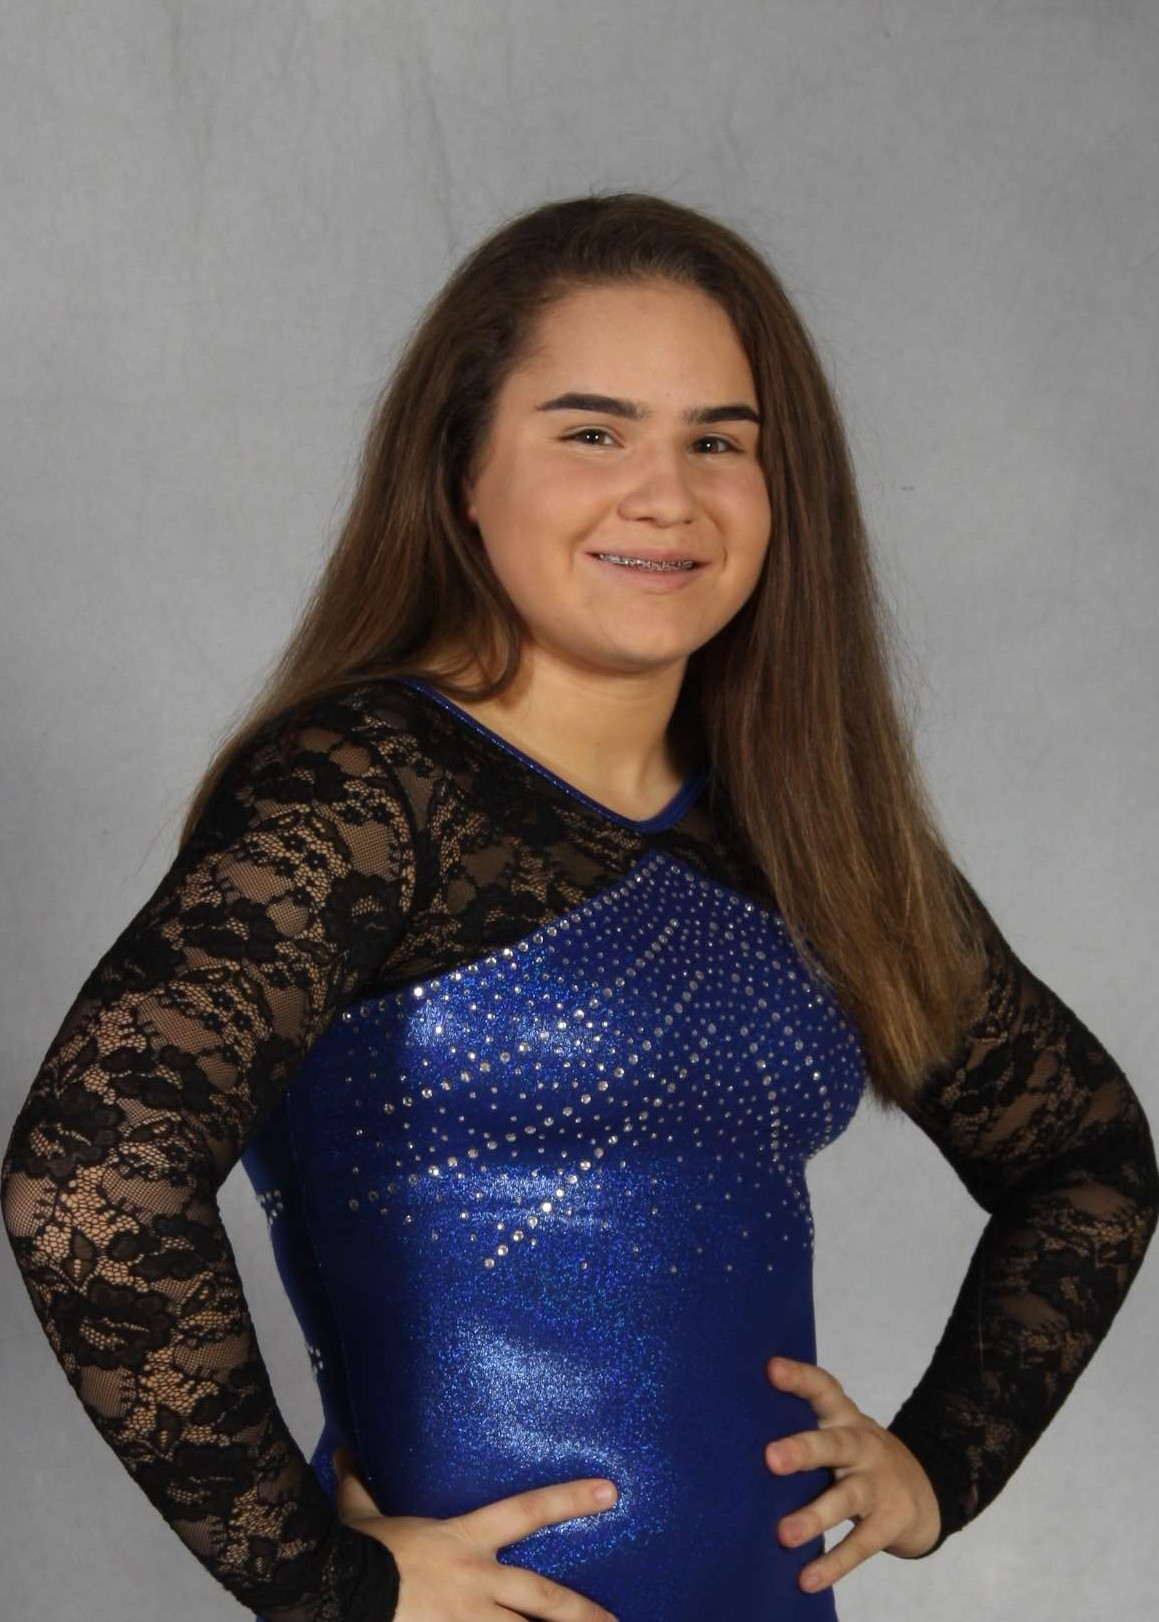 American Family Insurance Athlete of the Week 2/15/18